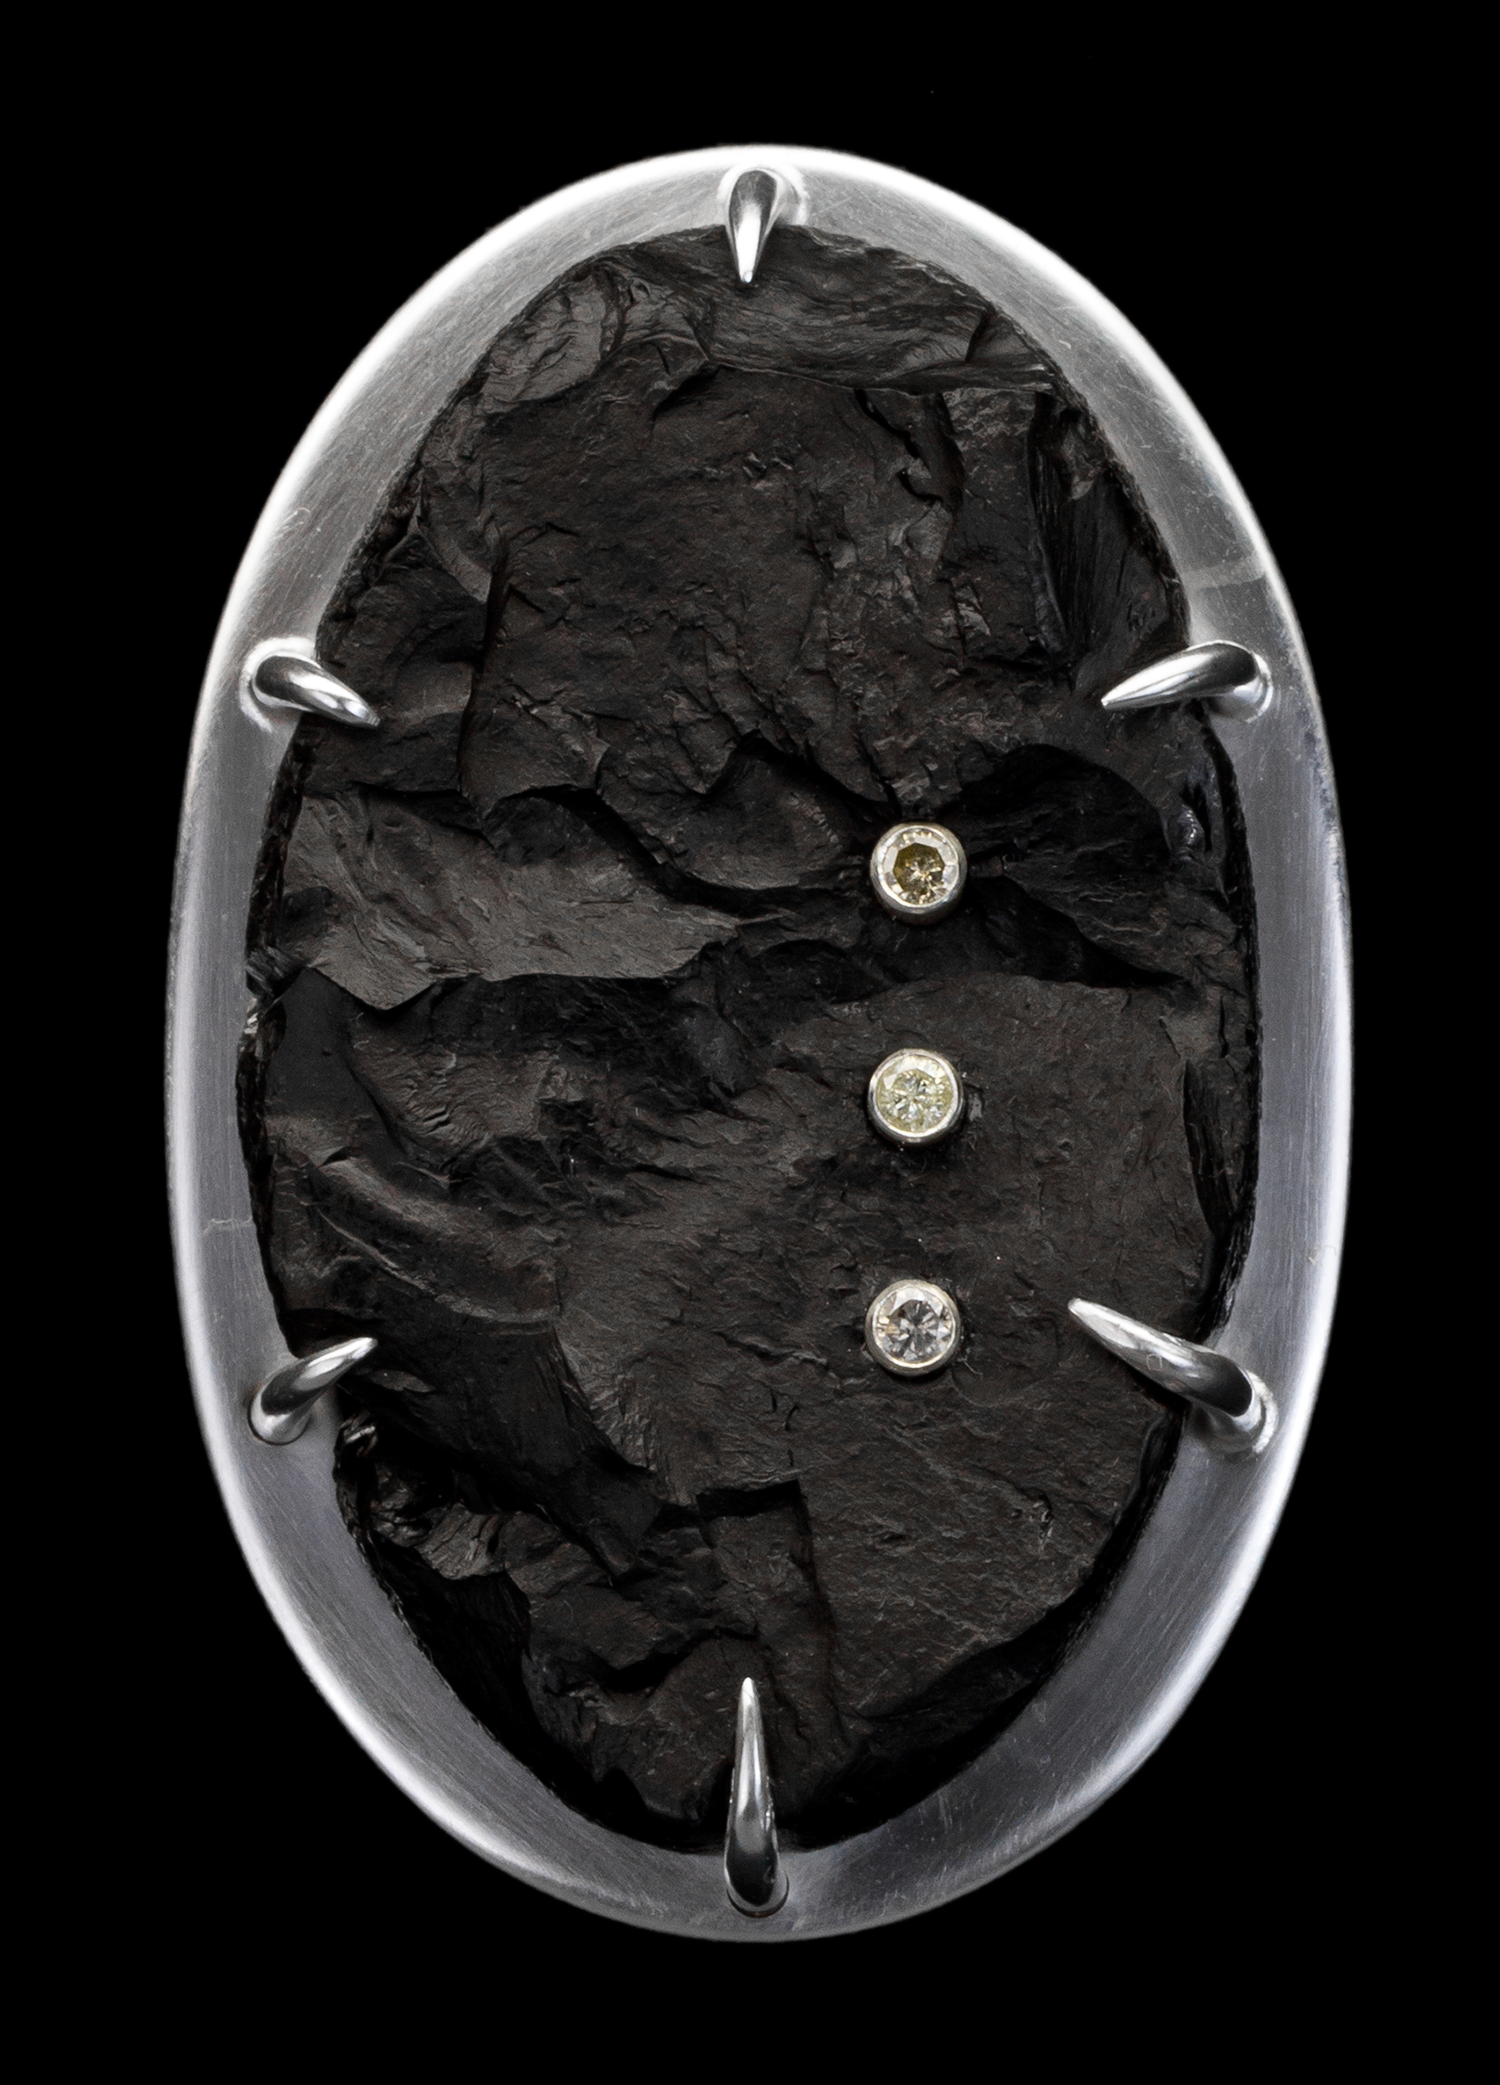 [SQUARE]-Coal-Brooch-1.png